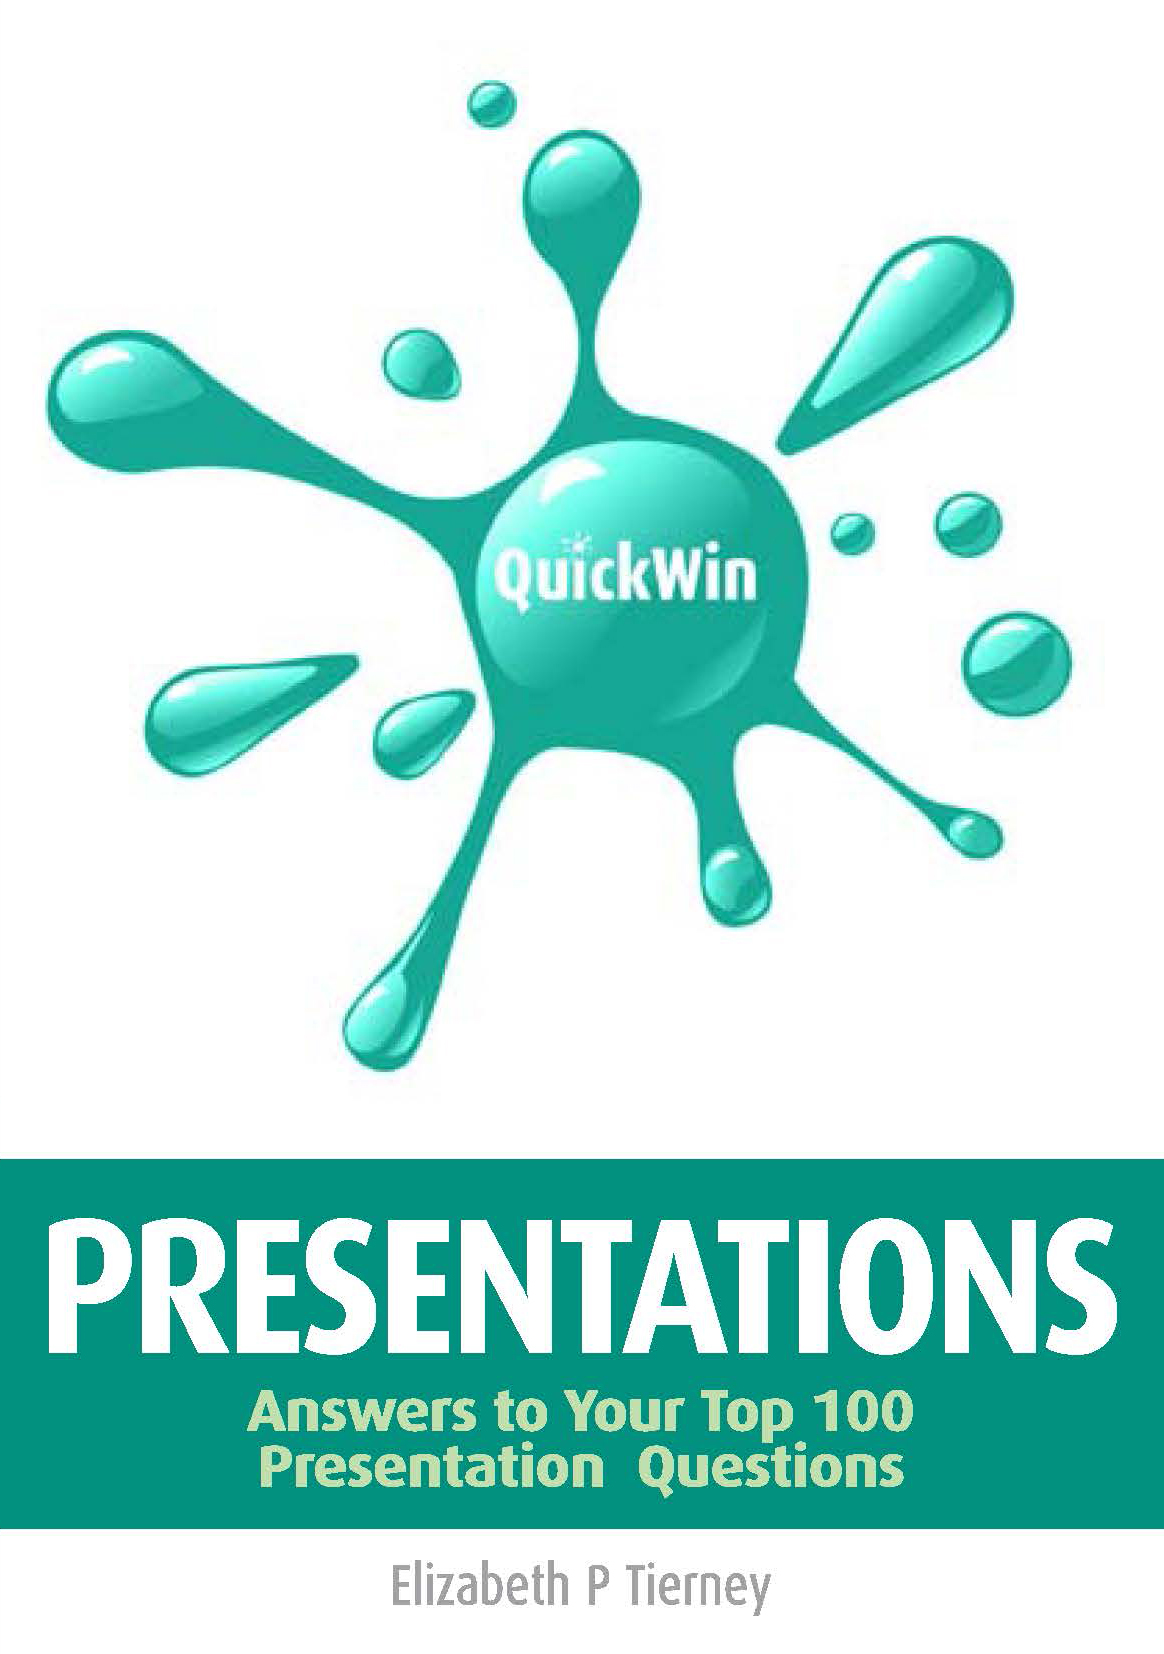 Quick Win Presentations: Answers to Your Top 100 Presentation Questions